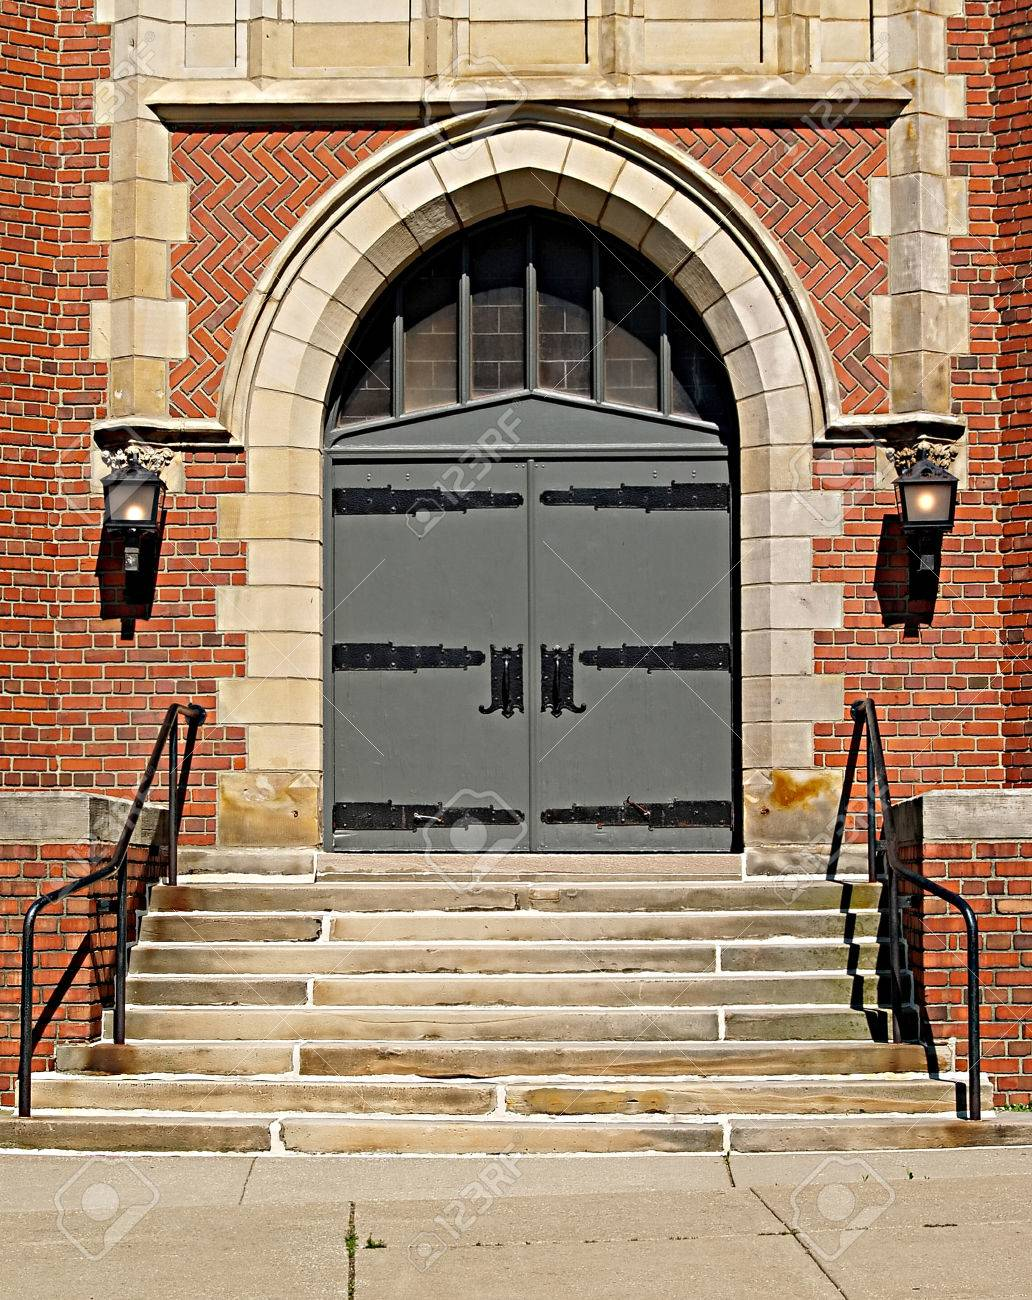 Gothic-style double doors at the front of a church in Northeastern Ohio Stock Photo & Gothic-style Double Doors At The Front Of A Church In Northeastern ... Pezcame.Com